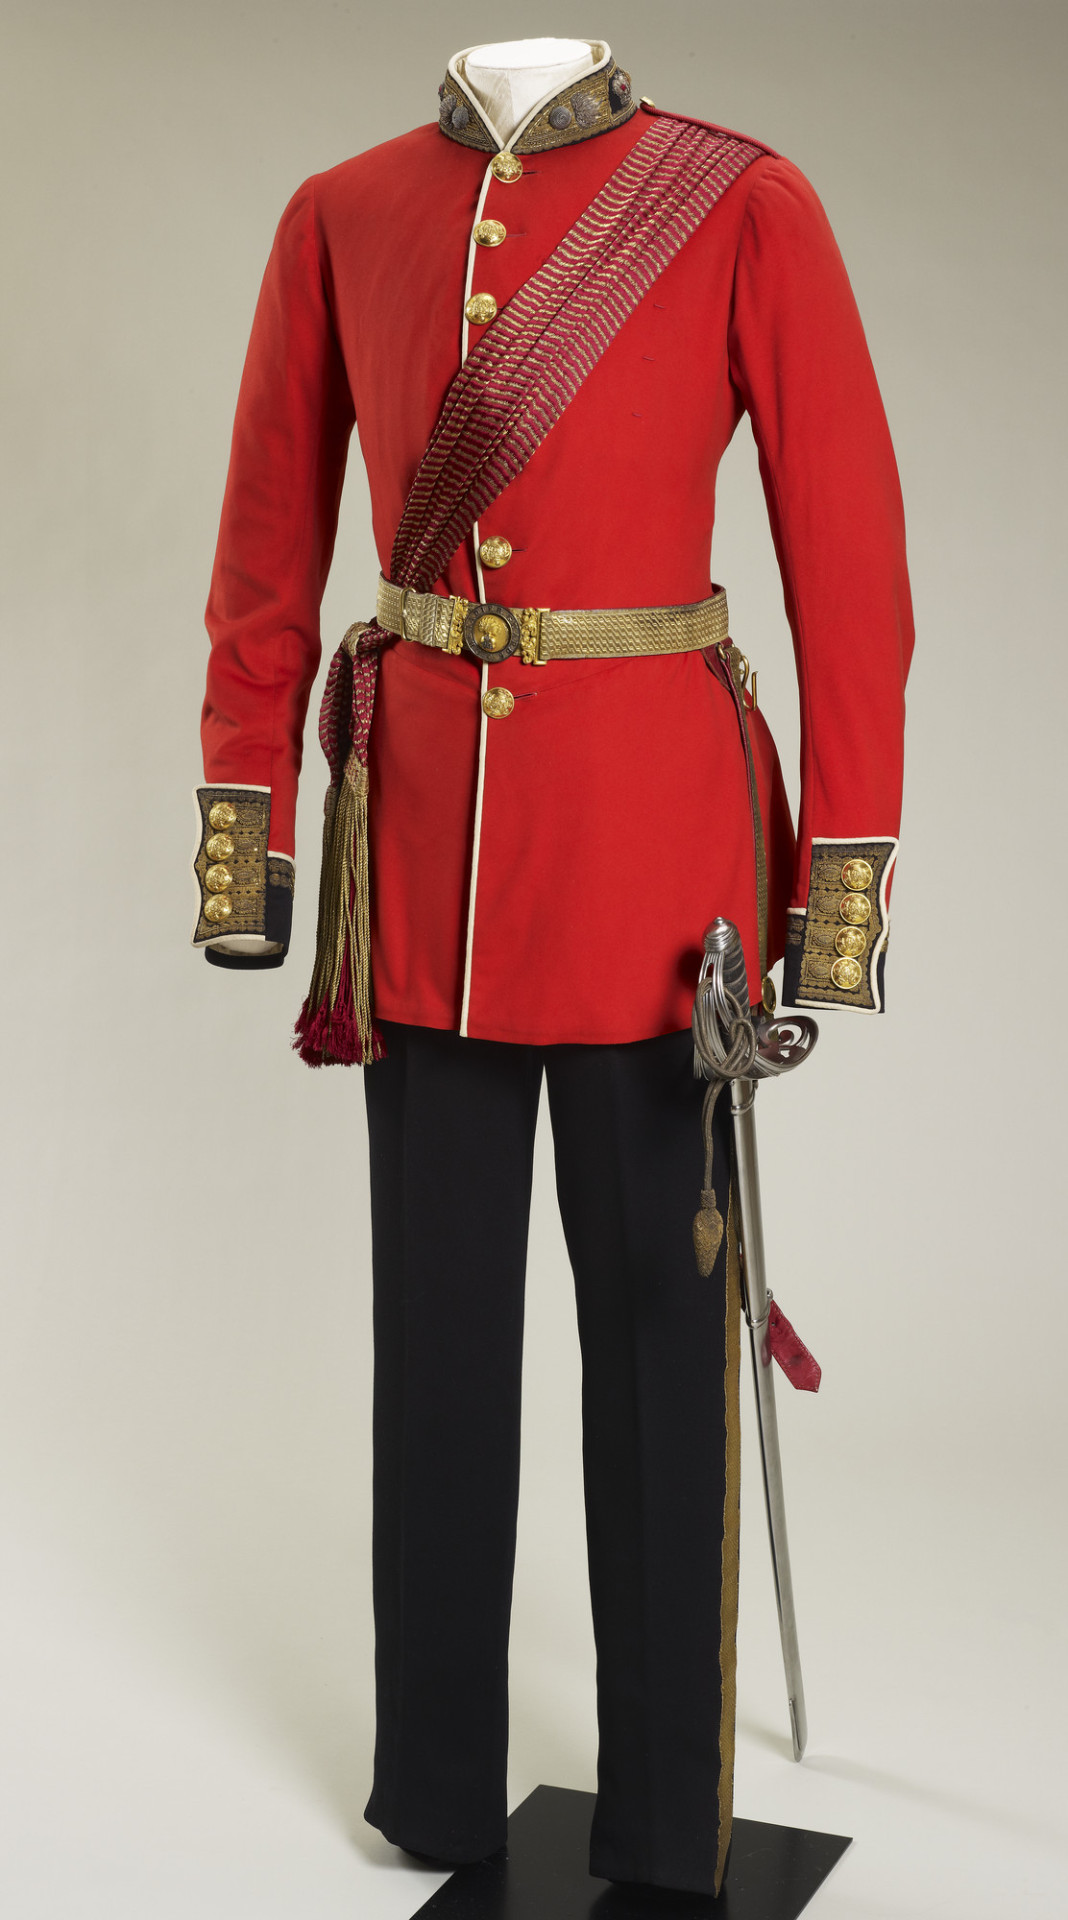 Prince Albert's Grenadier Guards uniform, worn between 1852 and 1861. The Prince Consort would have worn this uniform when reviewing Crimea Troops. Royal Collection